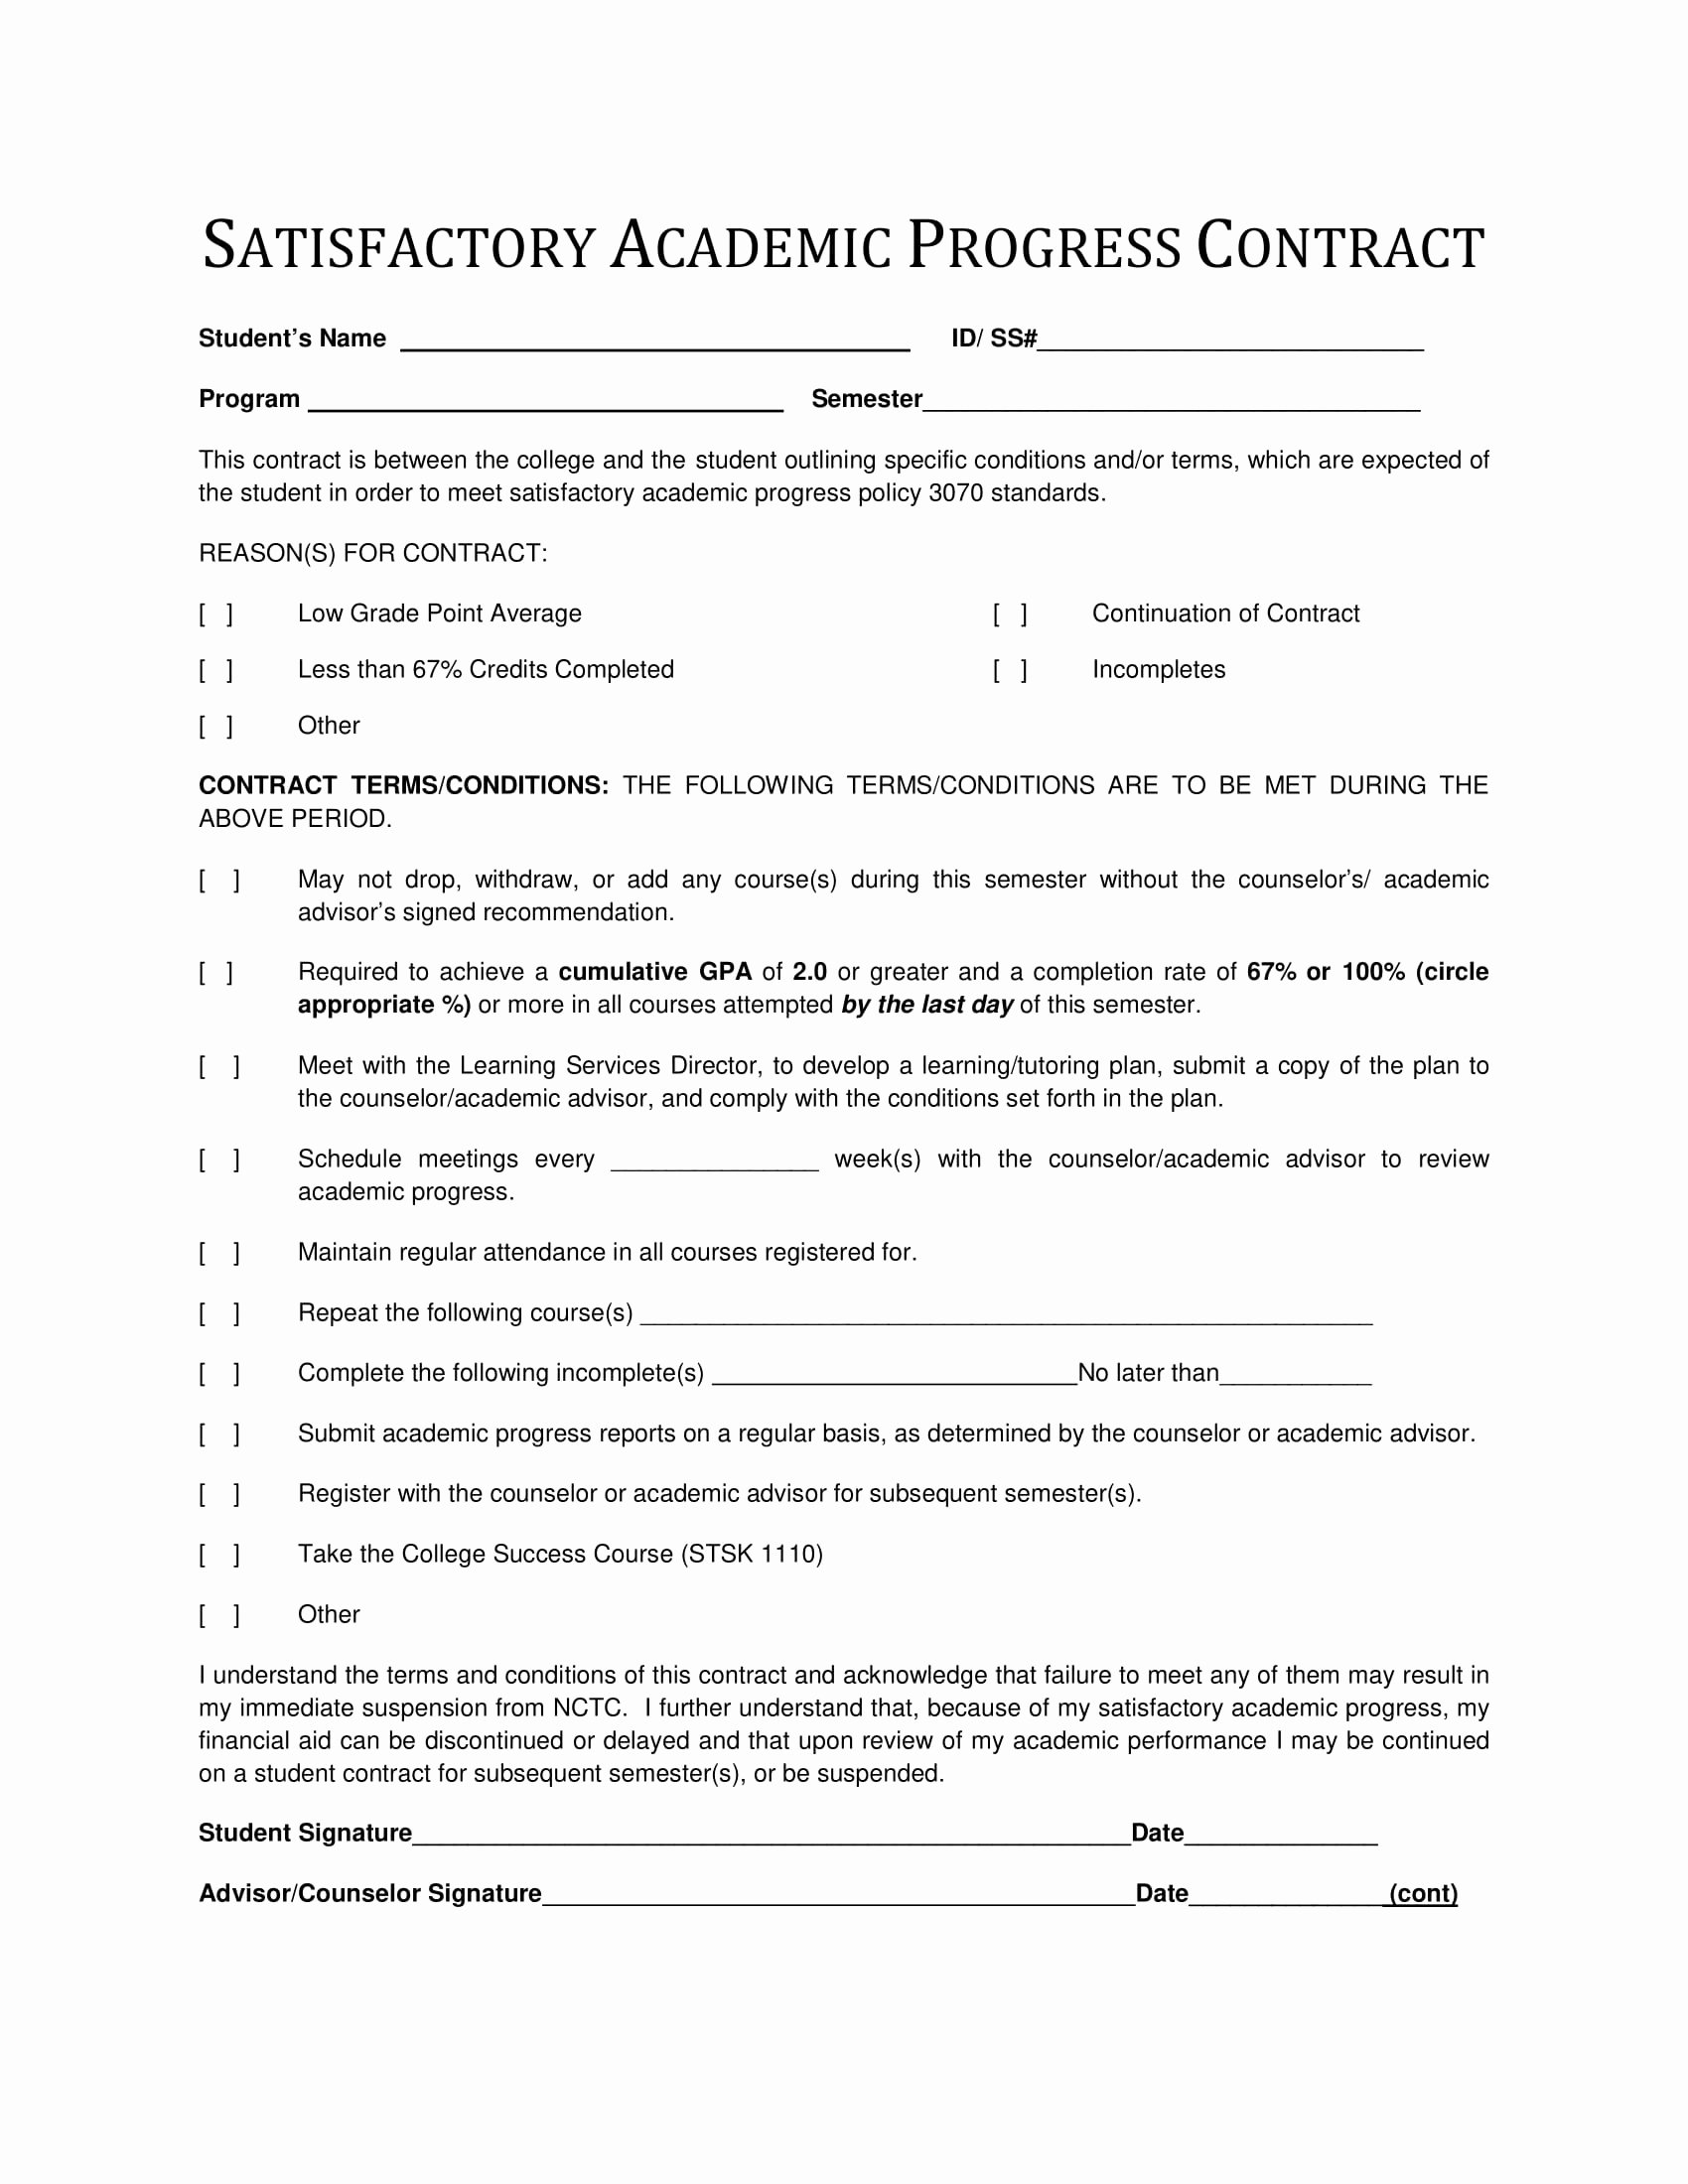 Student Academic Contract Template Awesome 9 Student Academic Contract Template Examples Pdf